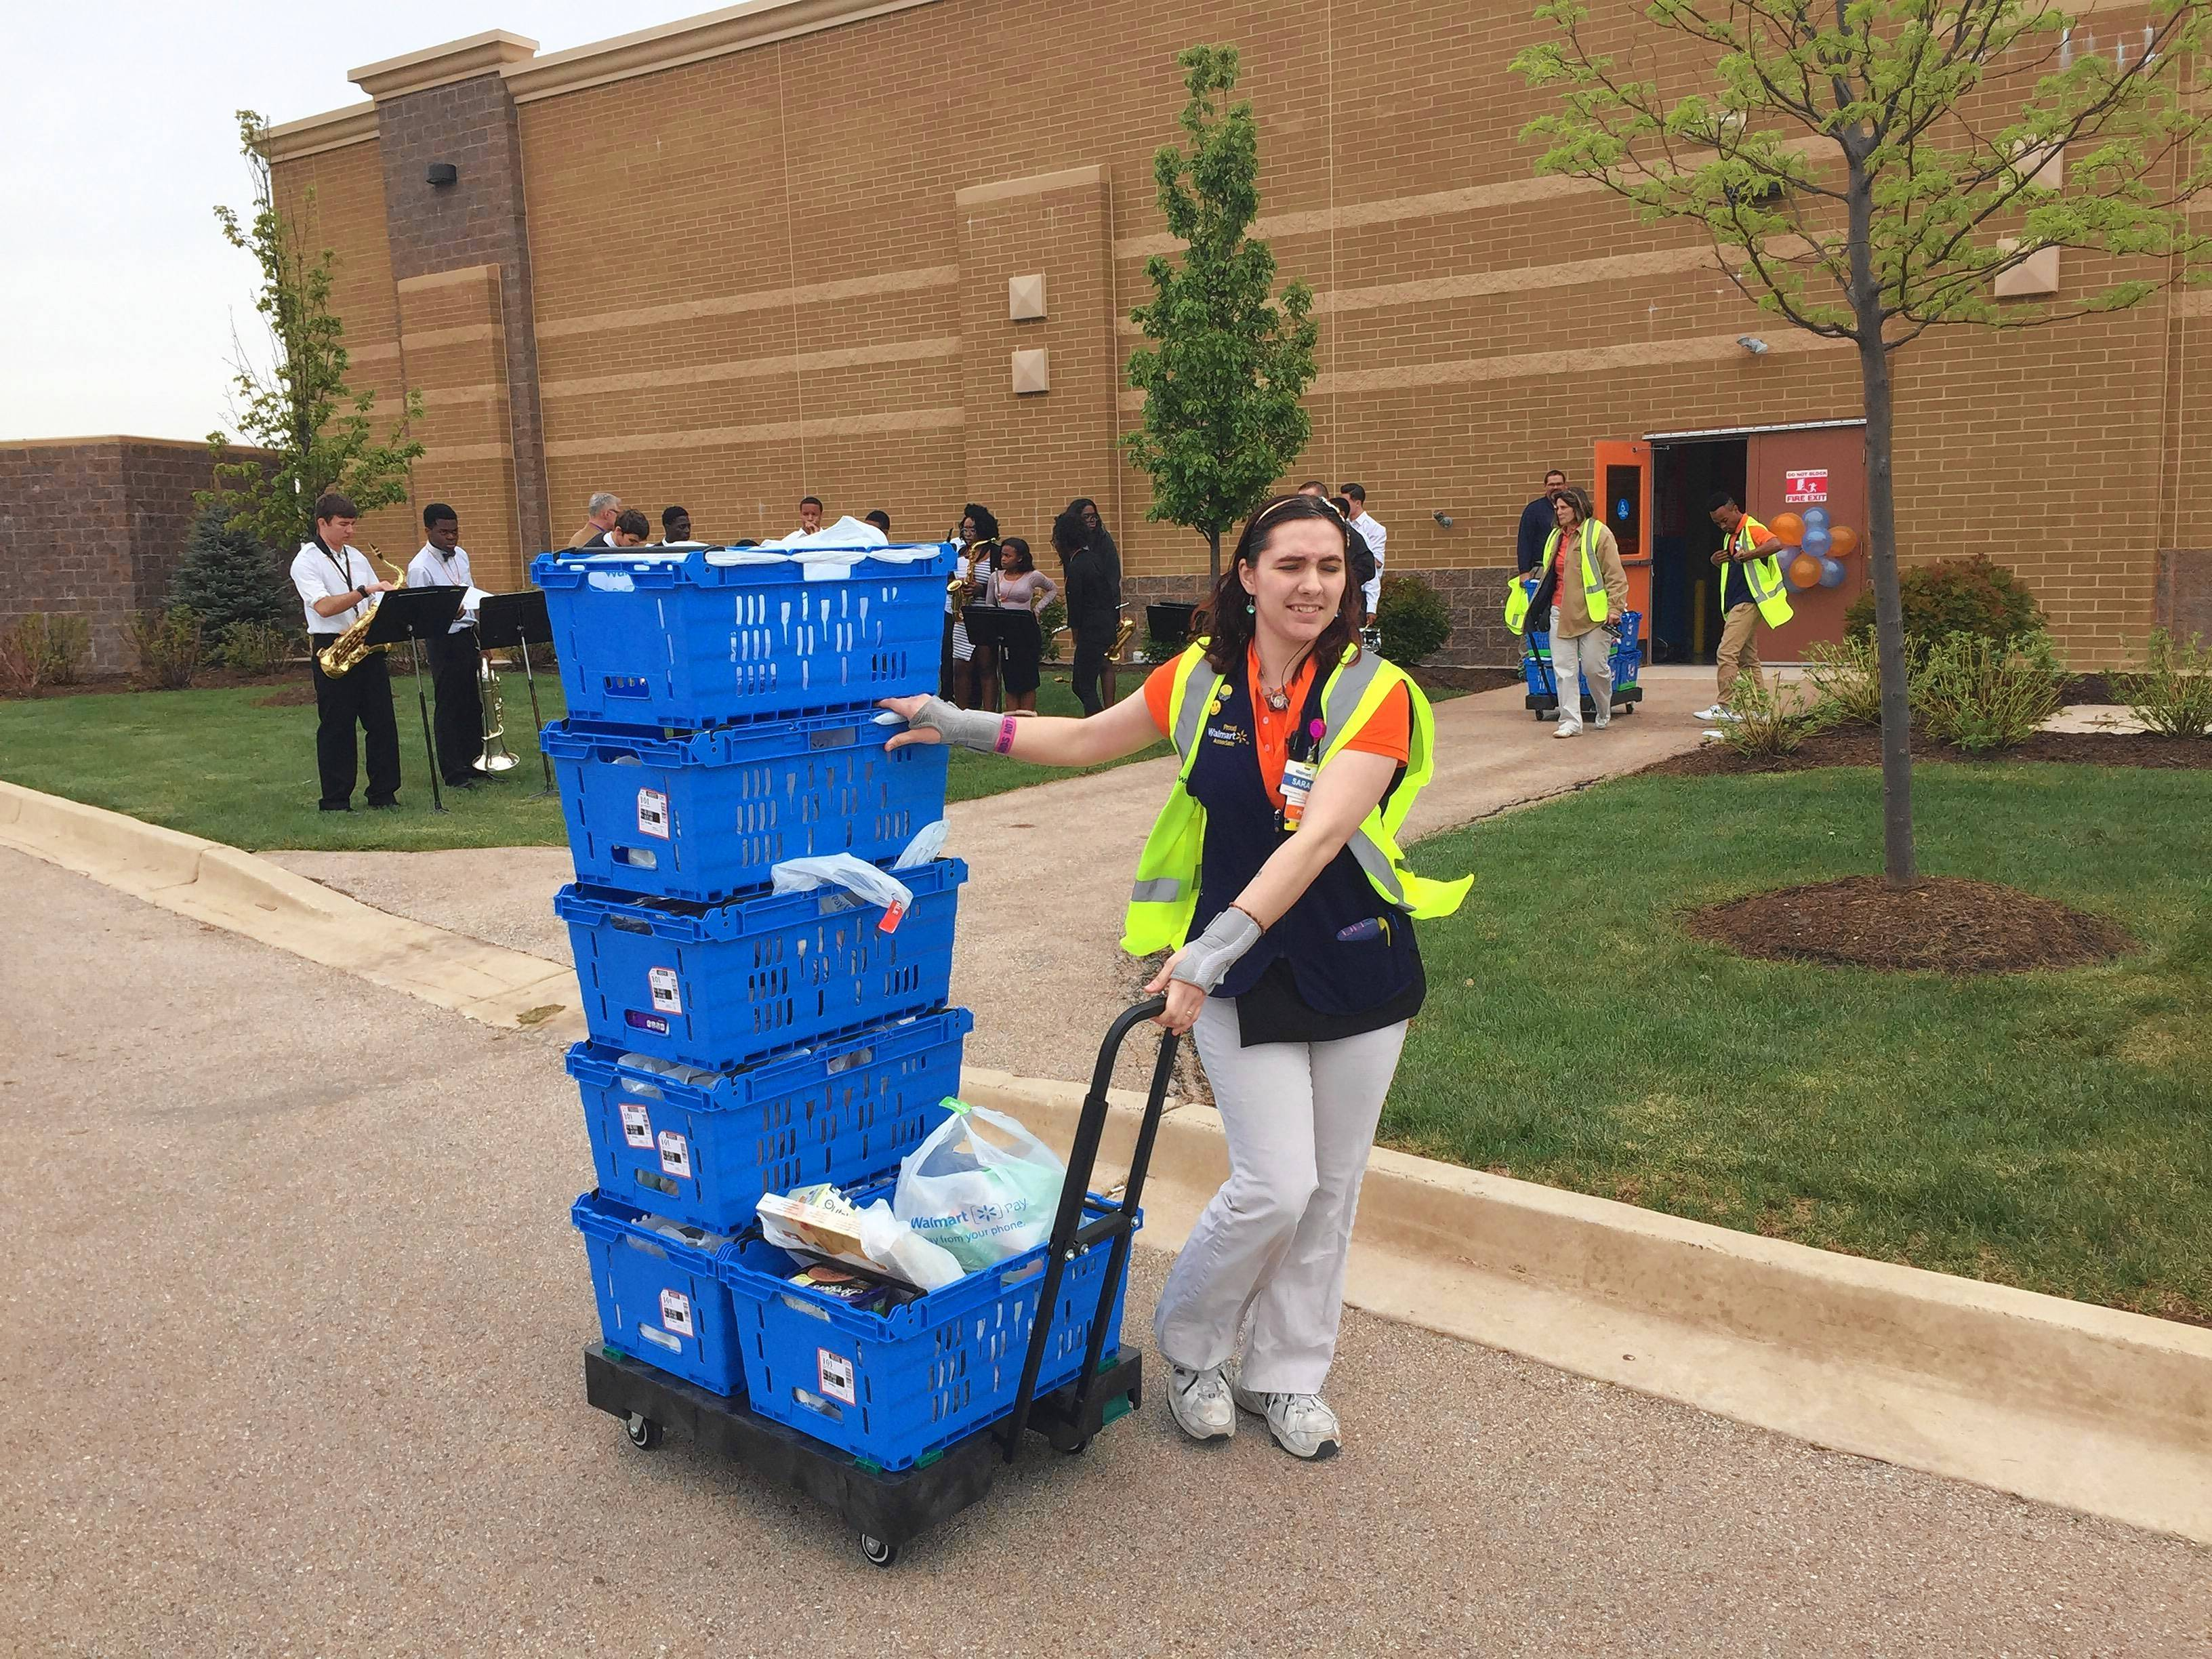 Sarah Frew delivers groceries she picked to a customer's car Thursday at the Wal-Mart in Batavia. The store is one of several in the Chicago area that this week started offering free online grocery shopping with curbside pickup.